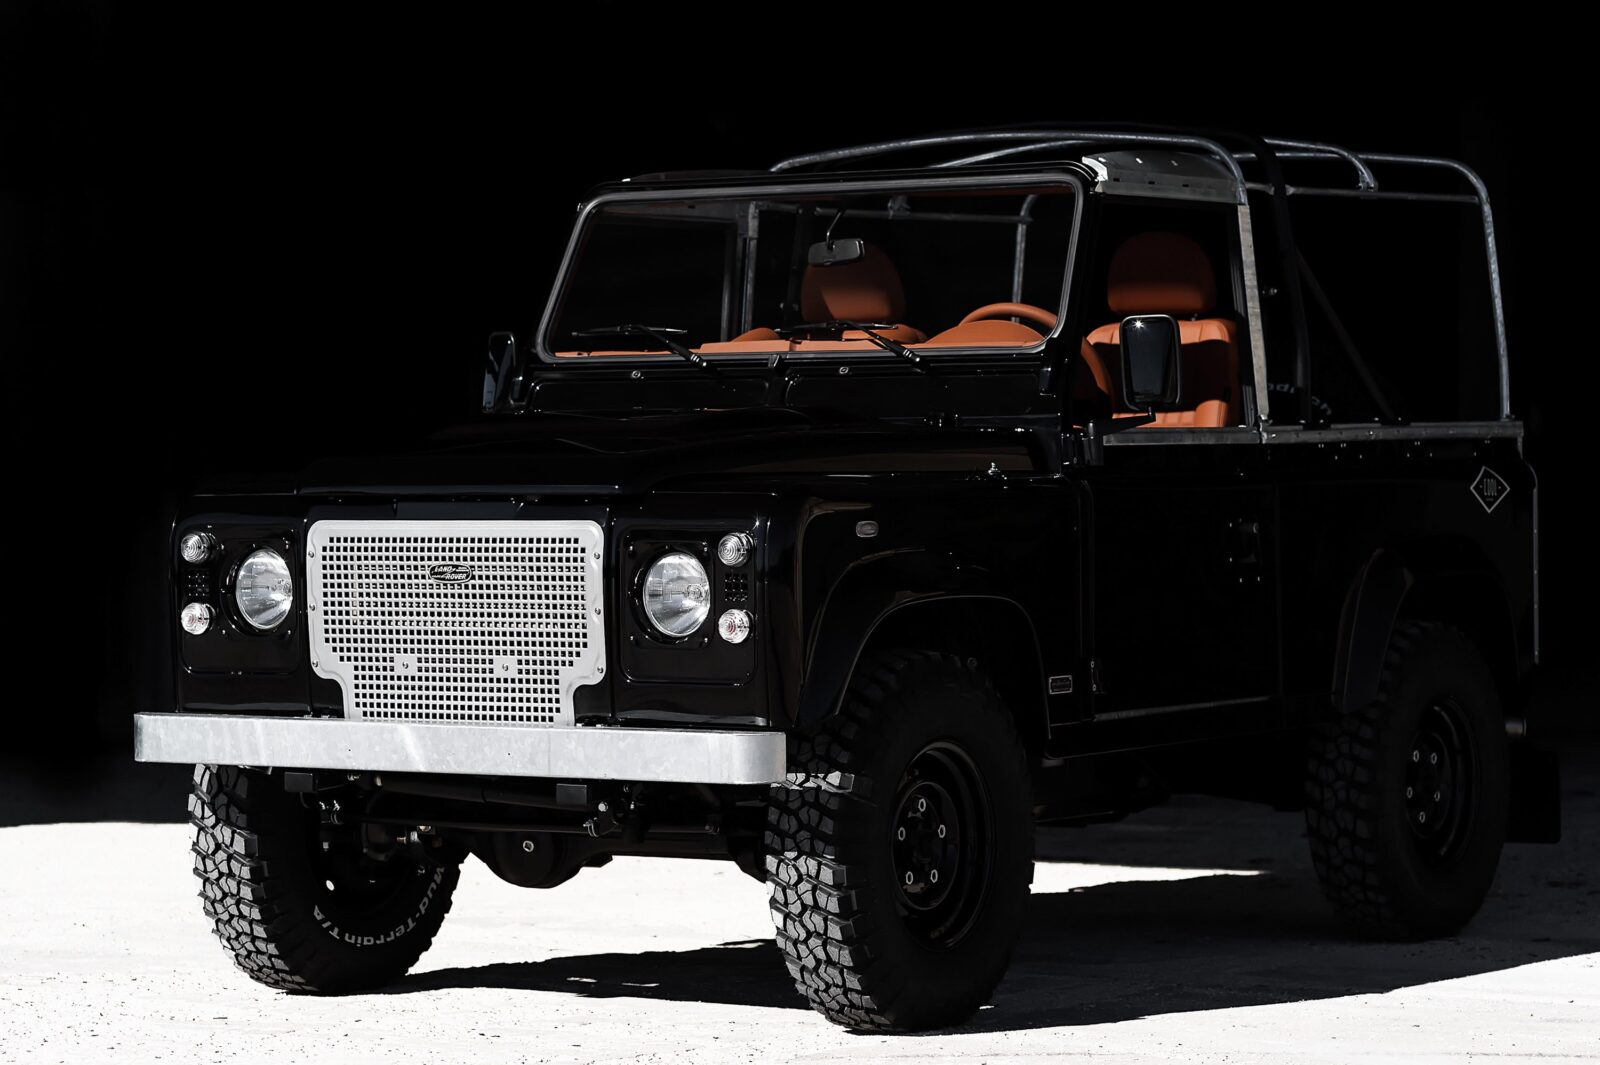 land rover defender car 16 1600x1065 - Jet Black Custom Land Rover Defender